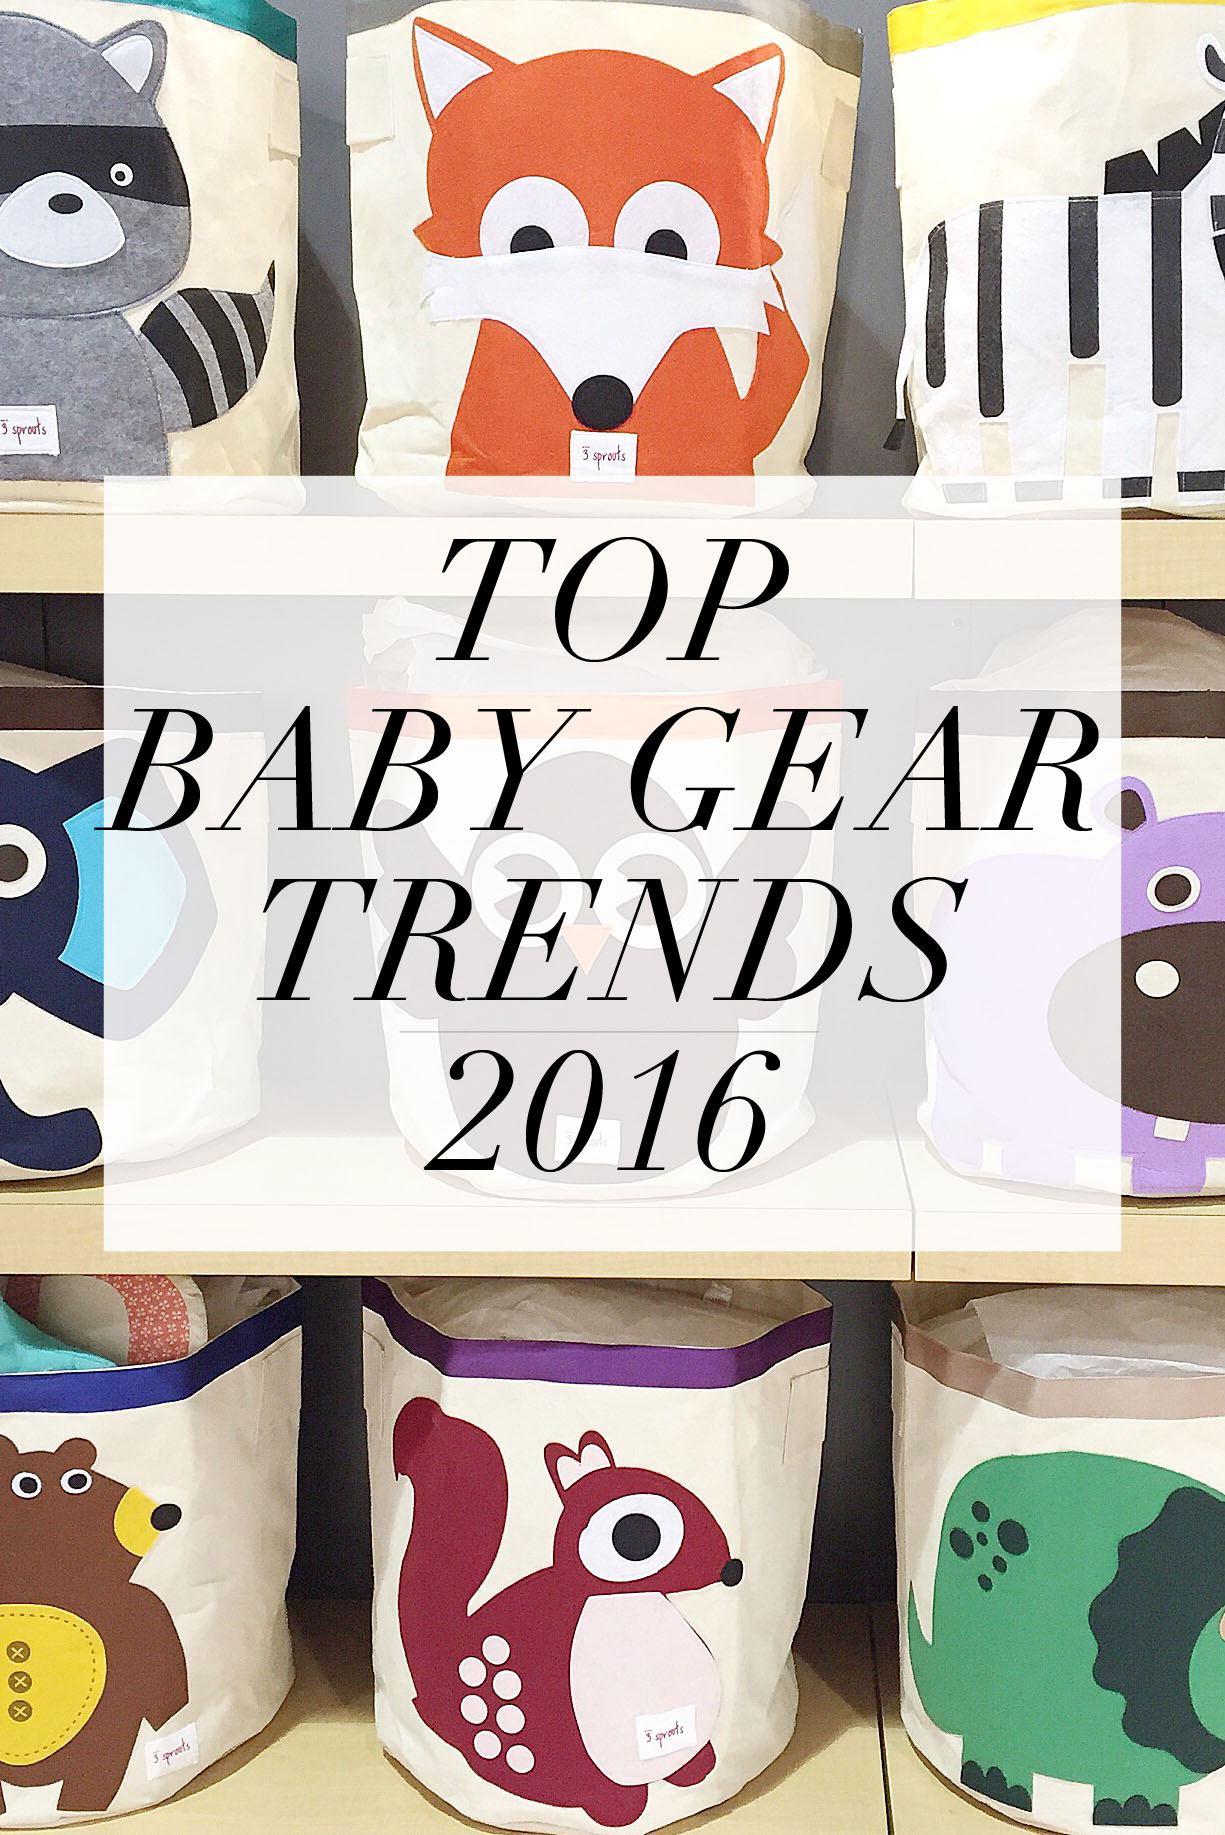 Top Baby Gear Trends for 2016  | Momma Society-The Community of Modern Moms | www.mommasociety.com | Join our community on Instagram @MommaSociety